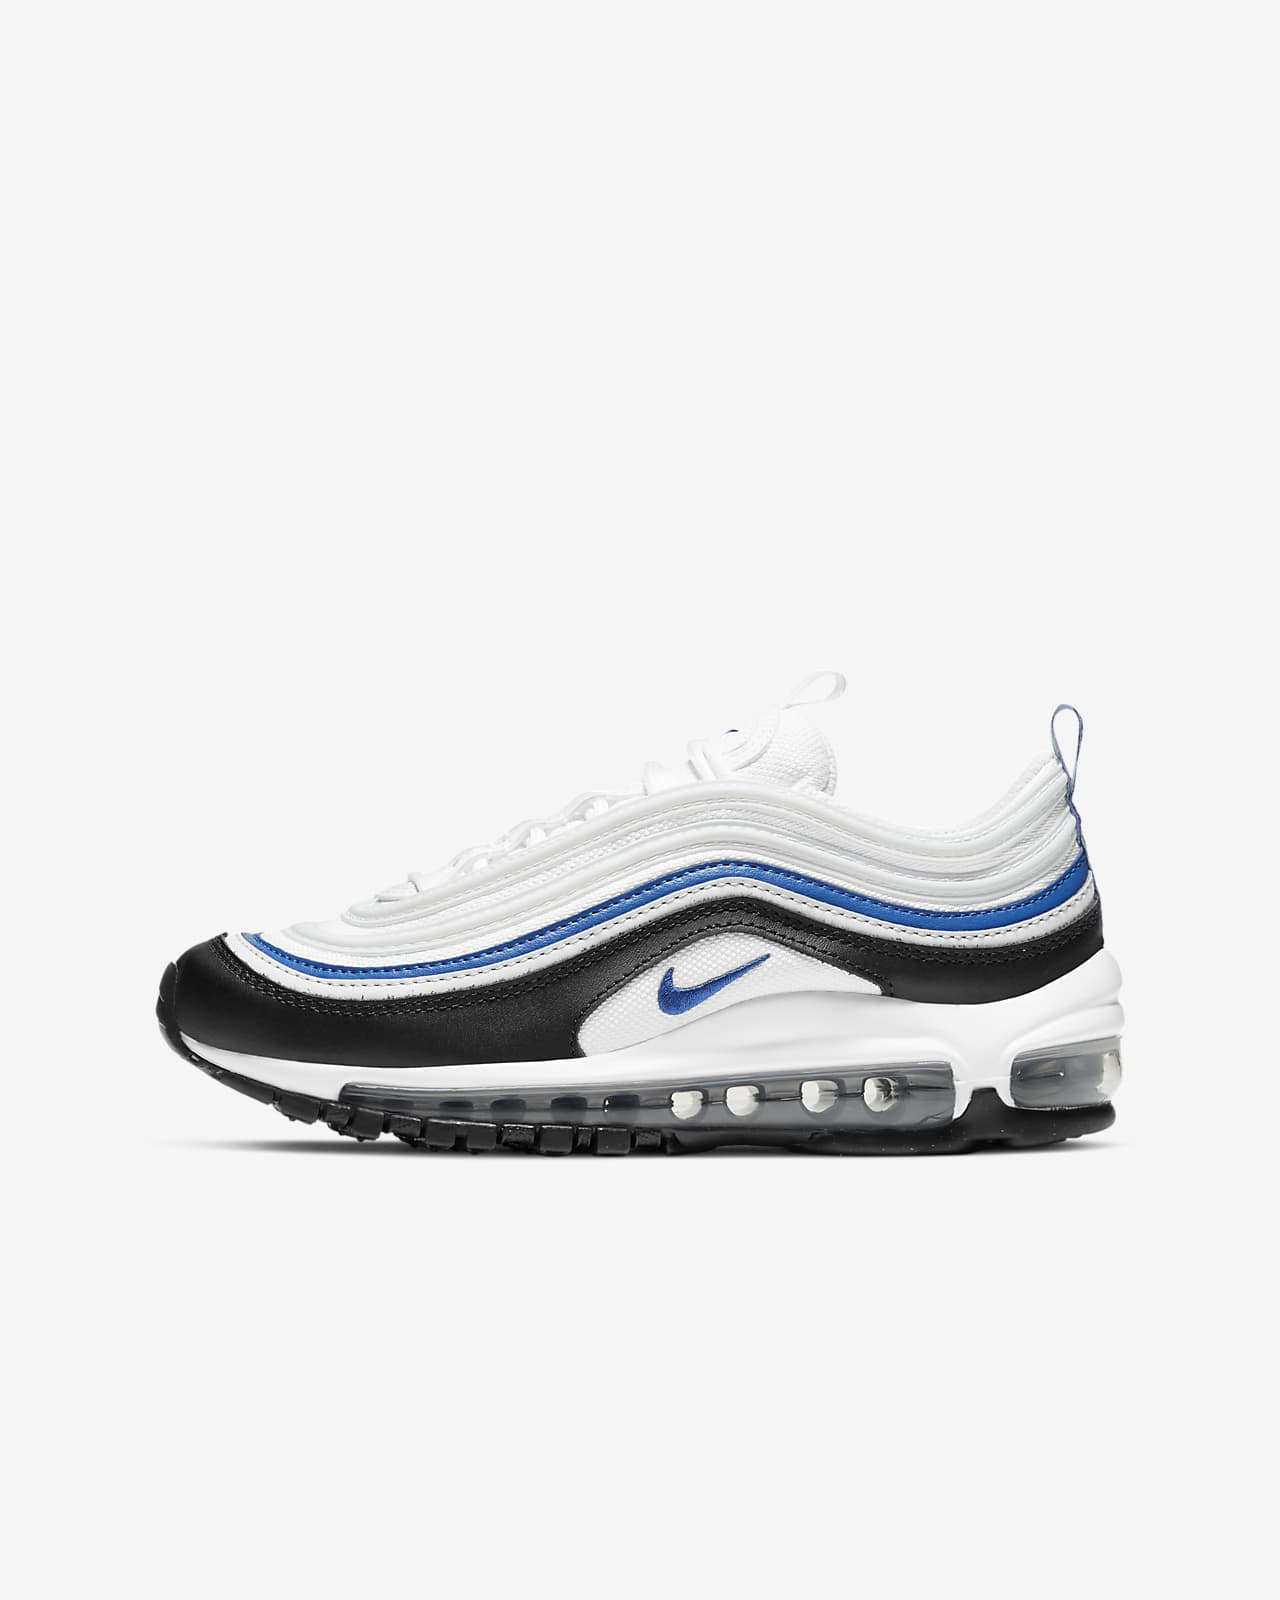 Nike Air Max 97 Kinderschoen